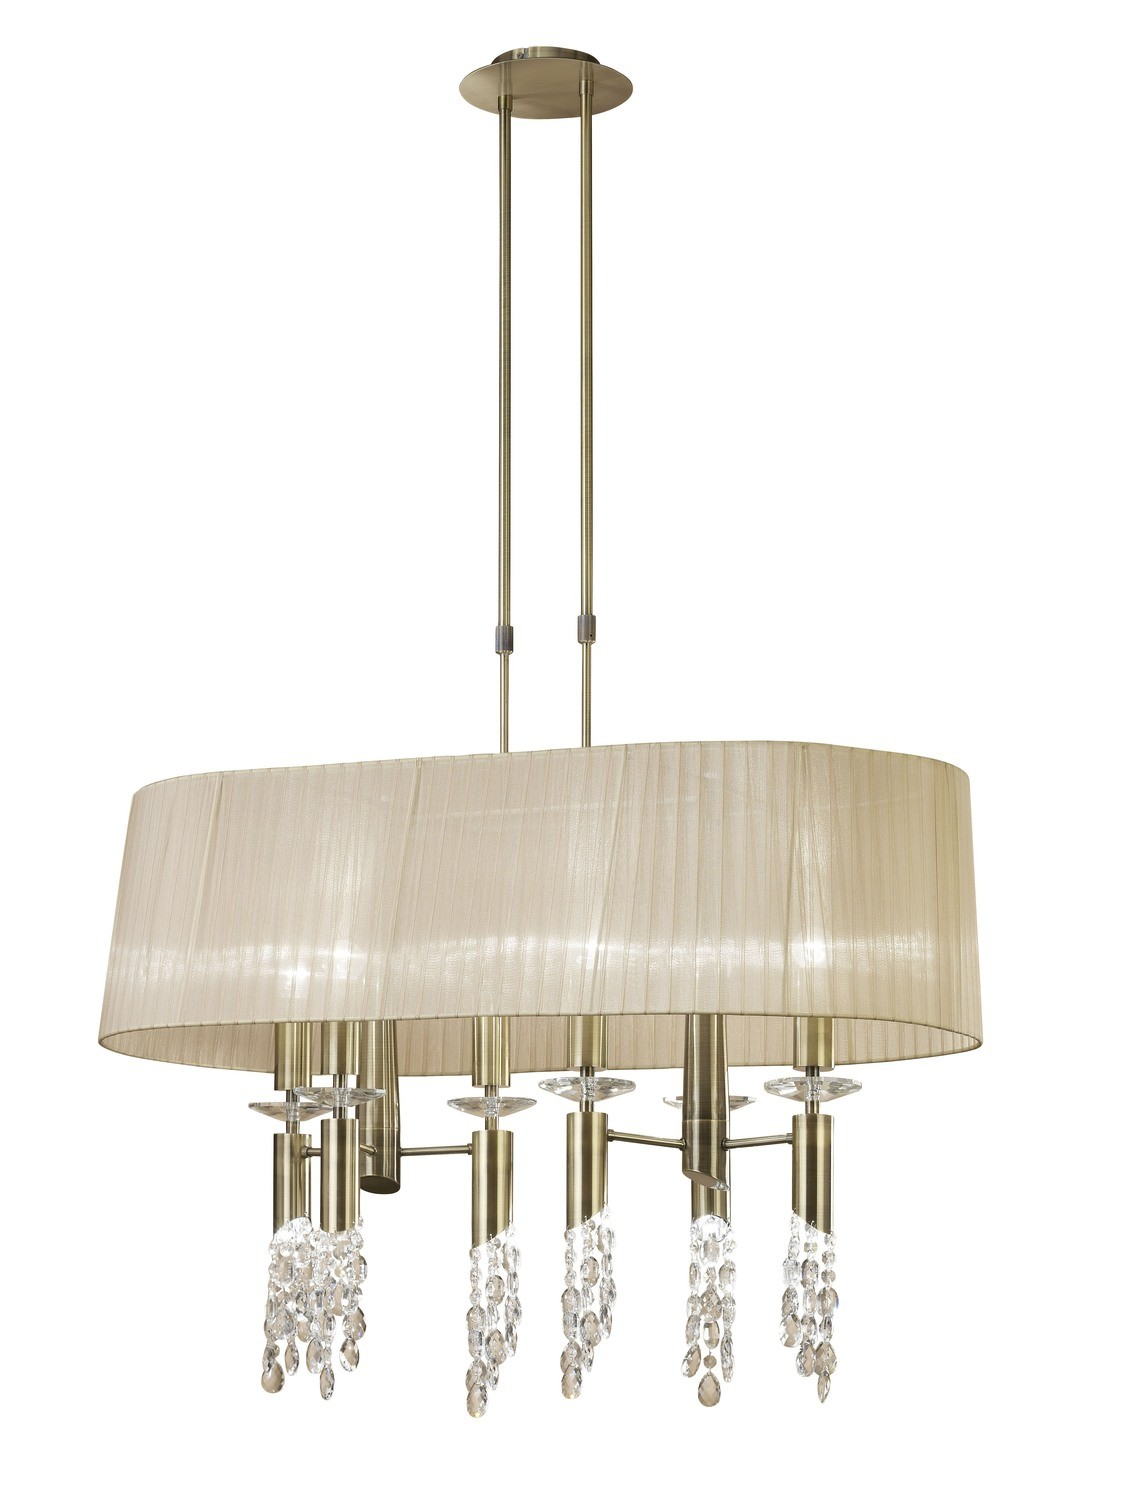 Tiffany Pendant 6+6 Light E27+G9 Oval, Antique Brass ,Clear Crystal